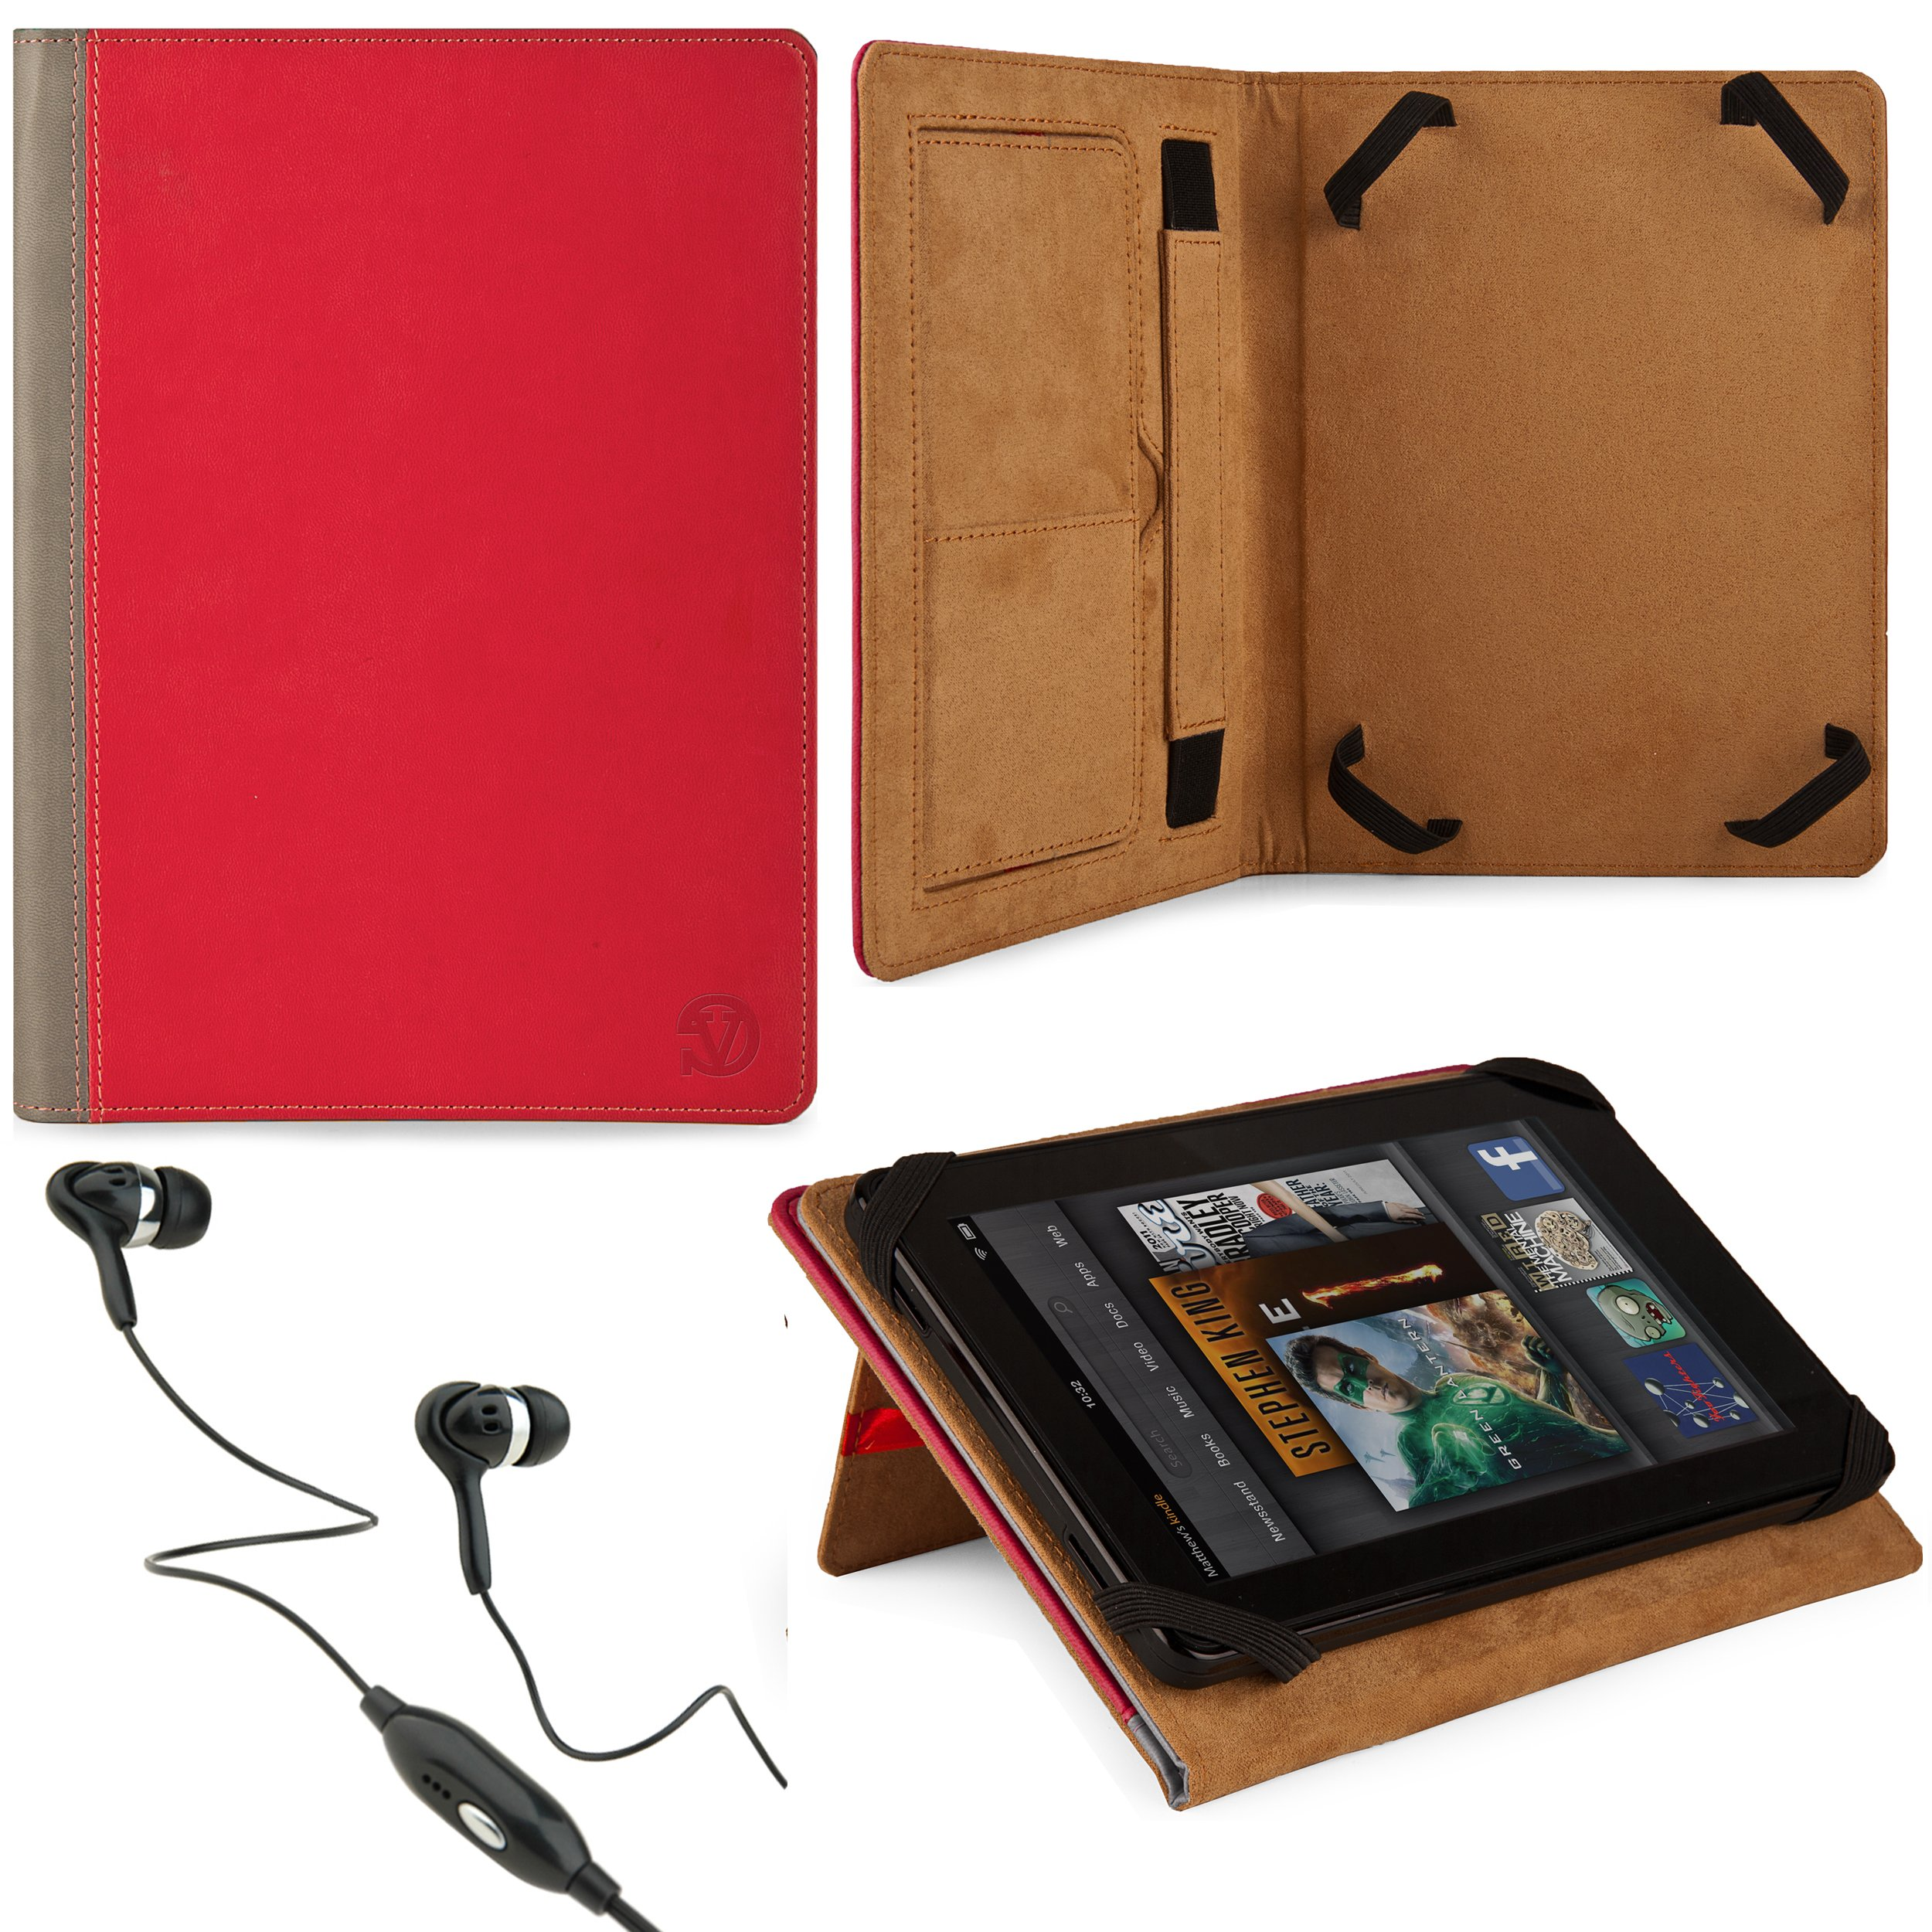 Marry Edition VG Brand Folio Stand Alone Protective Leatherette Carrying Case Cover Case Cover-(2 Tone Pink & Gray) for Samsung Galaxy Tab 7.0 Plus / Samsung Galaxy Tab 7.7 Android Tablets + Black Handsfree Hifi Noise Isolating Stereo Headphones with Wind